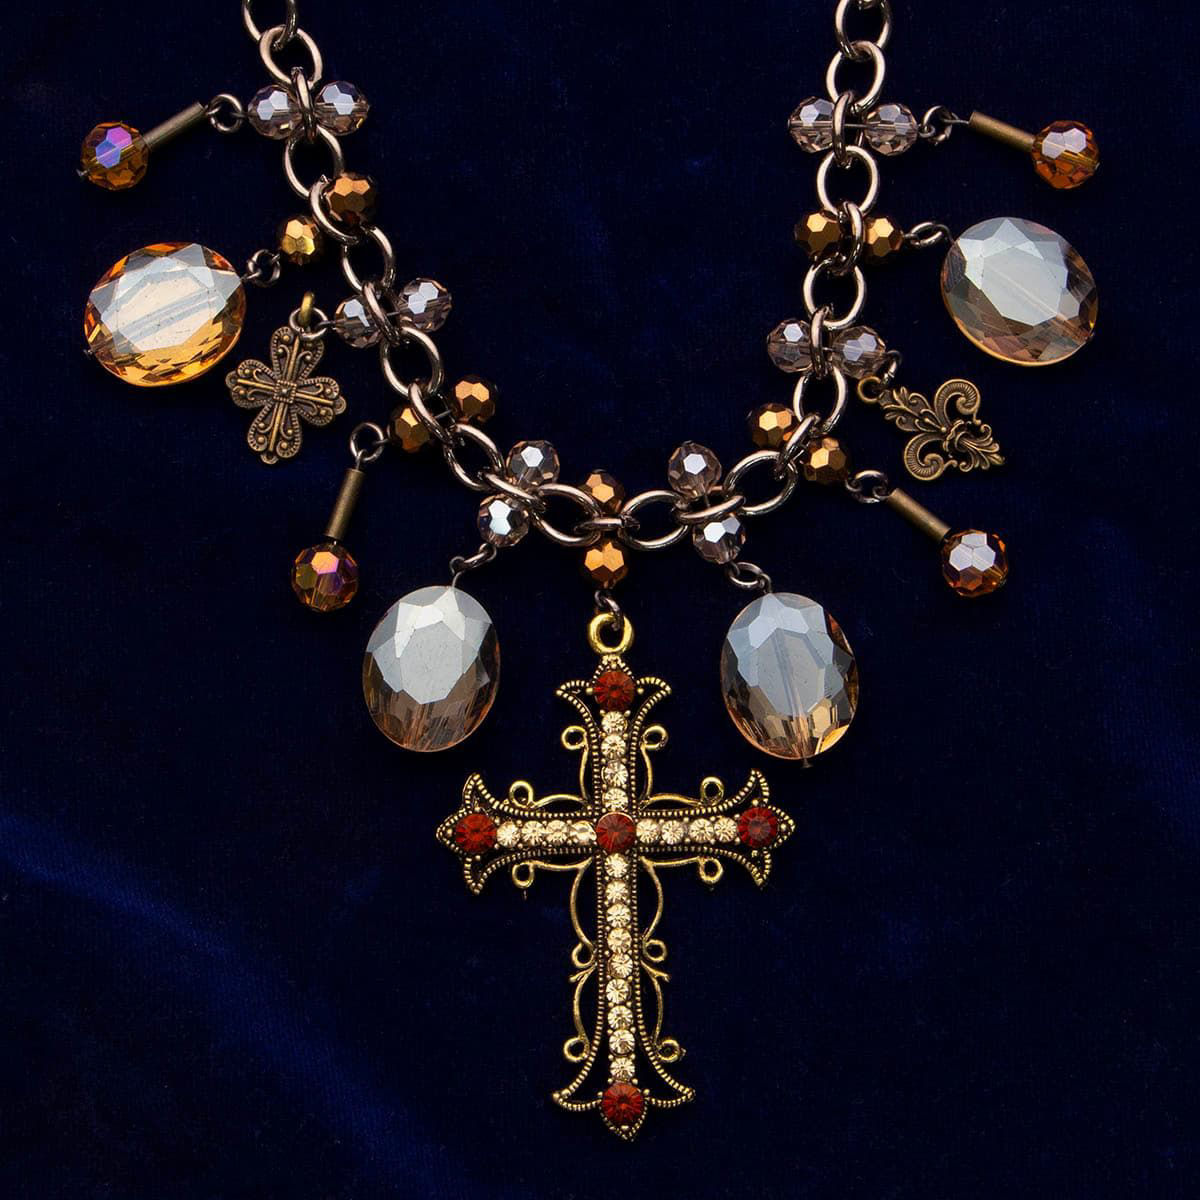 choker has faux pale topaz, fleur-de-lis and cross pendants centered by a large brass cross with faux rubies and yellow diamonds